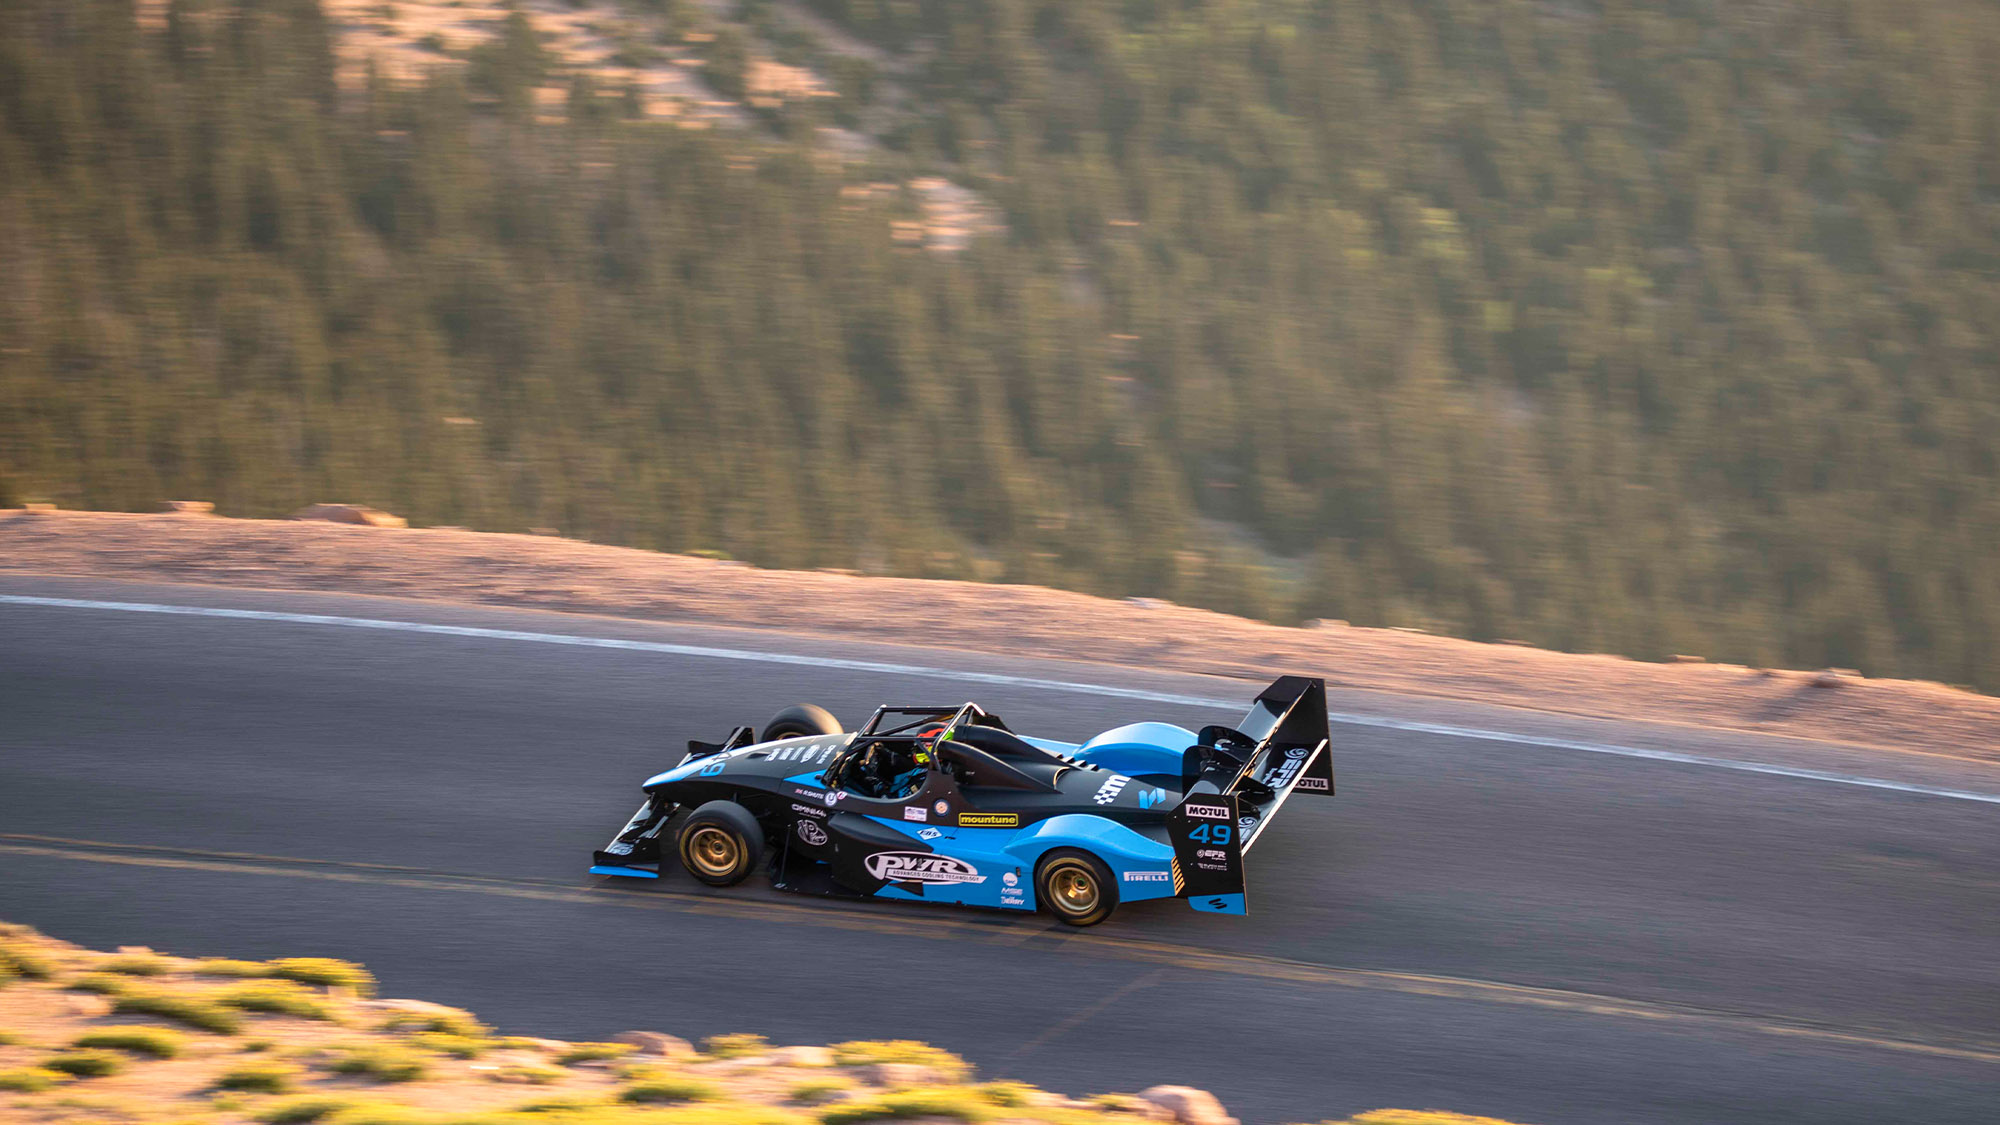 Robin Shute driving up Pike's Peak in his Wolf in 202